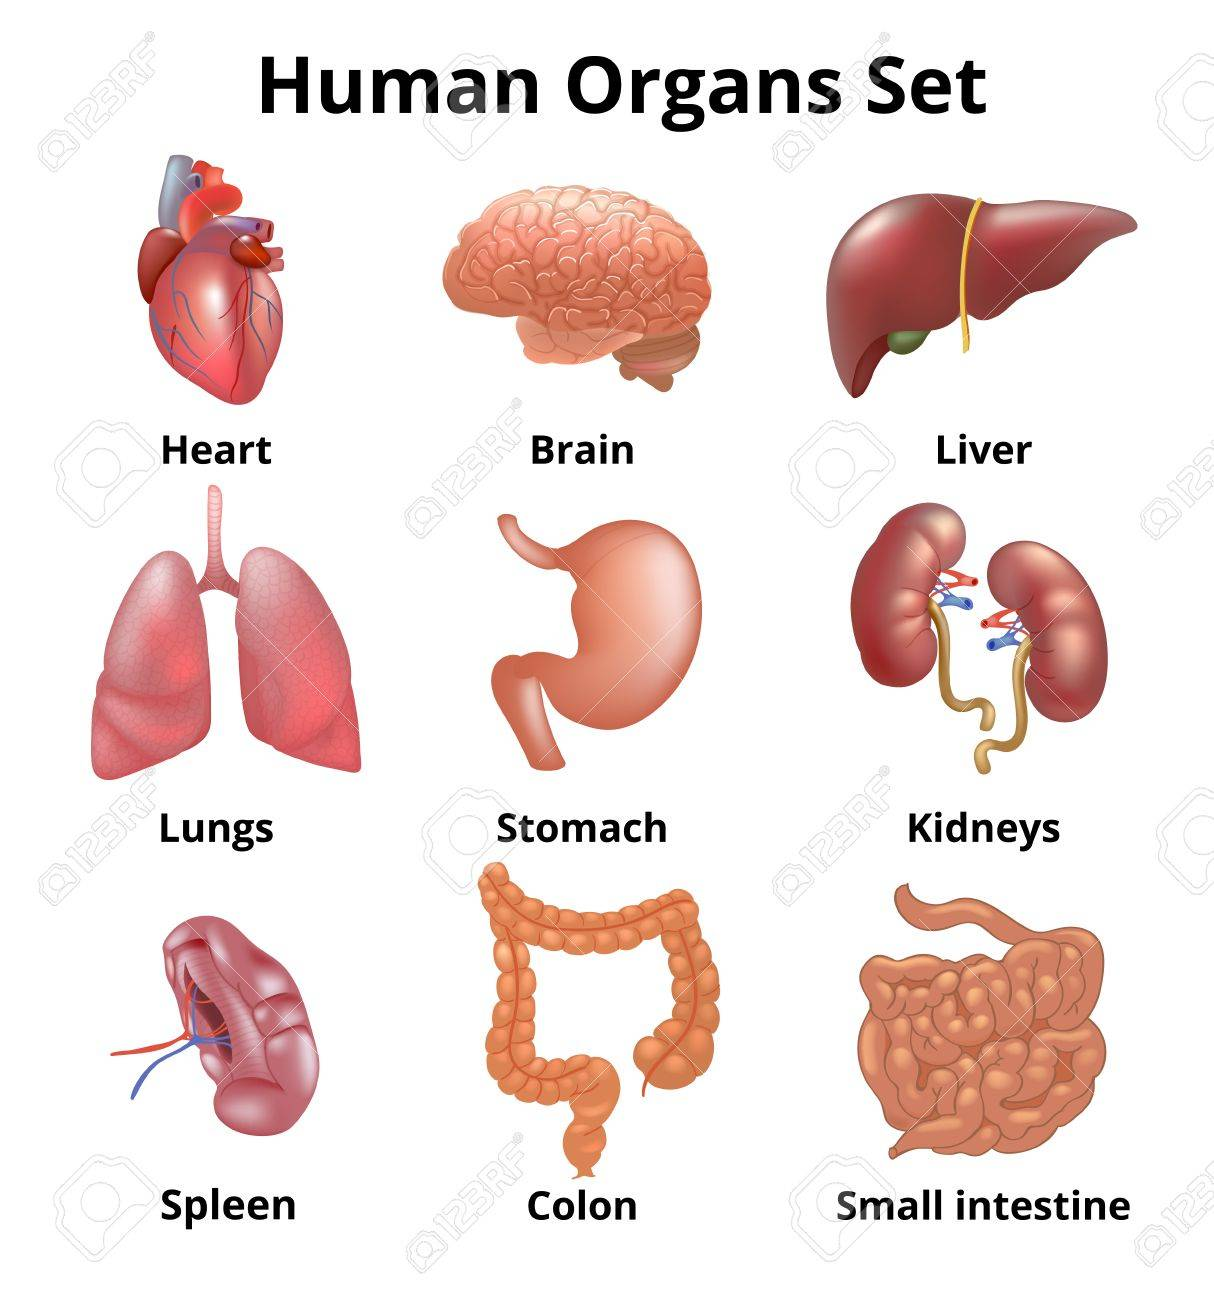 Realistic Human Organs Set Anatomy Stock Photo, Picture And Royalty ...